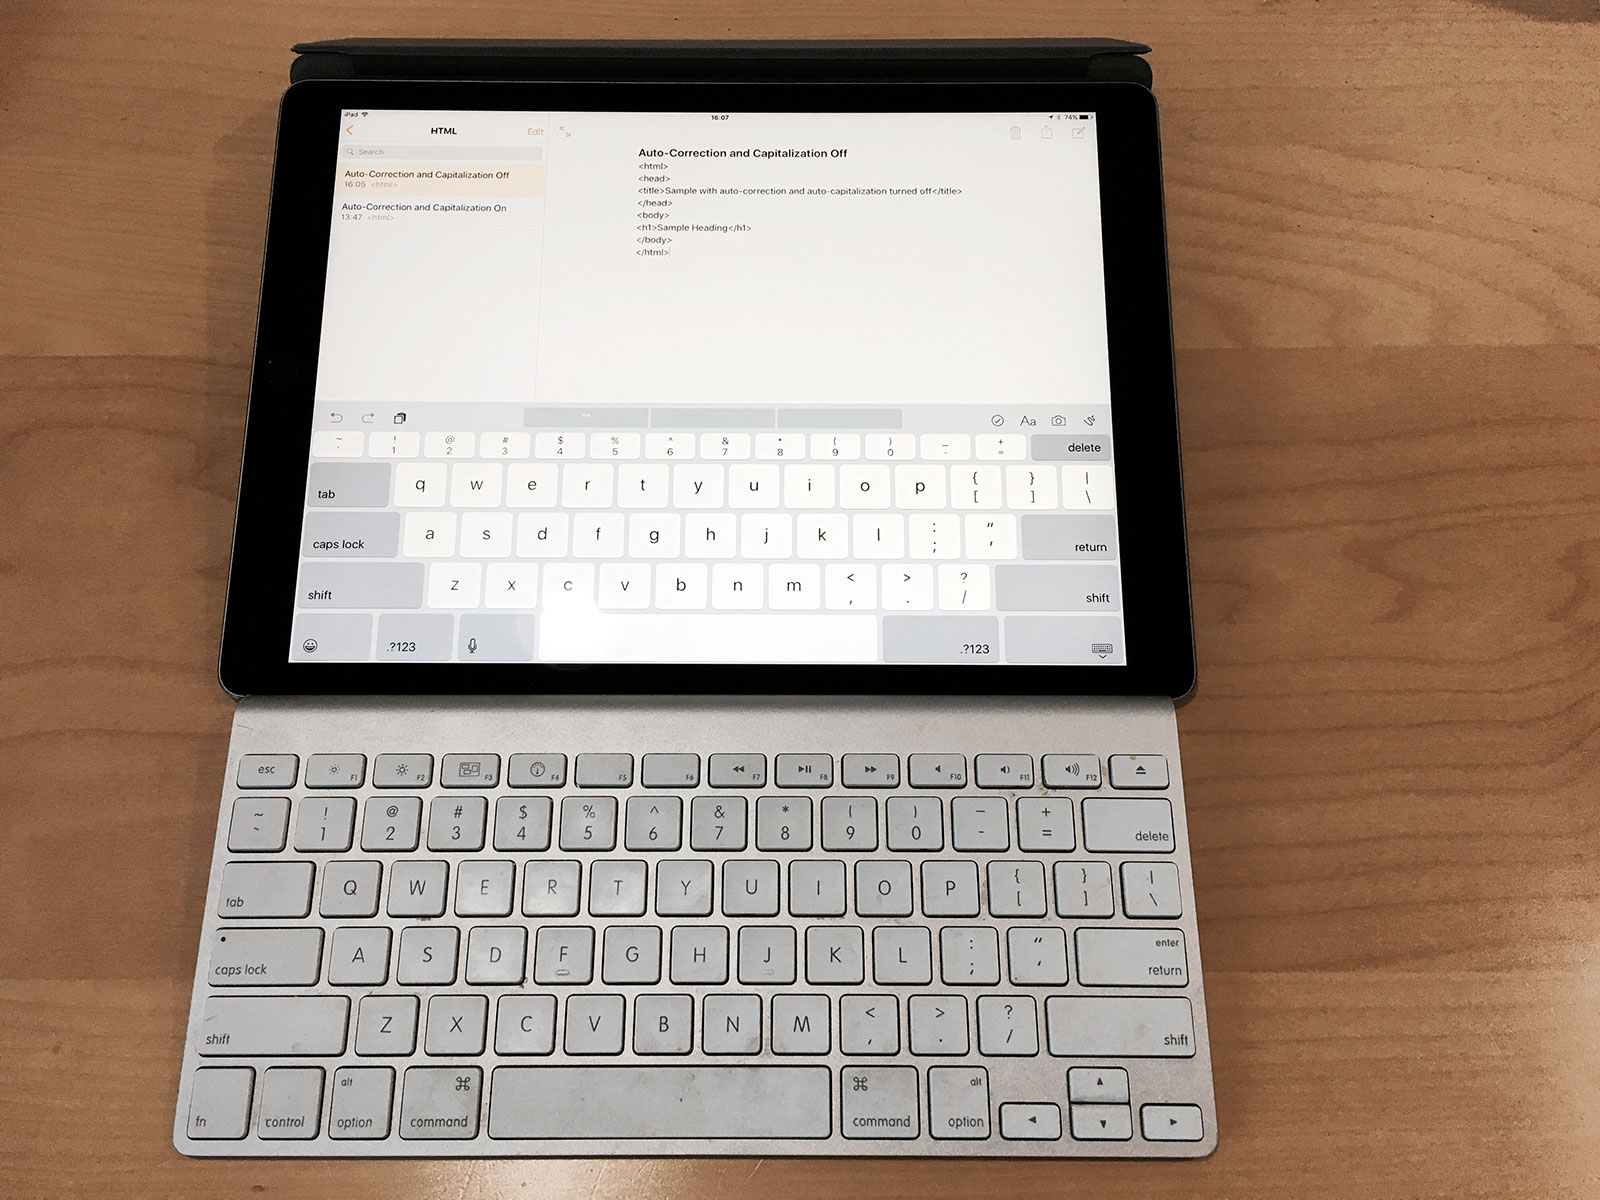 65a9e9c236b iPad Pro and Apple Wireless Keyboard Compared – tow.com